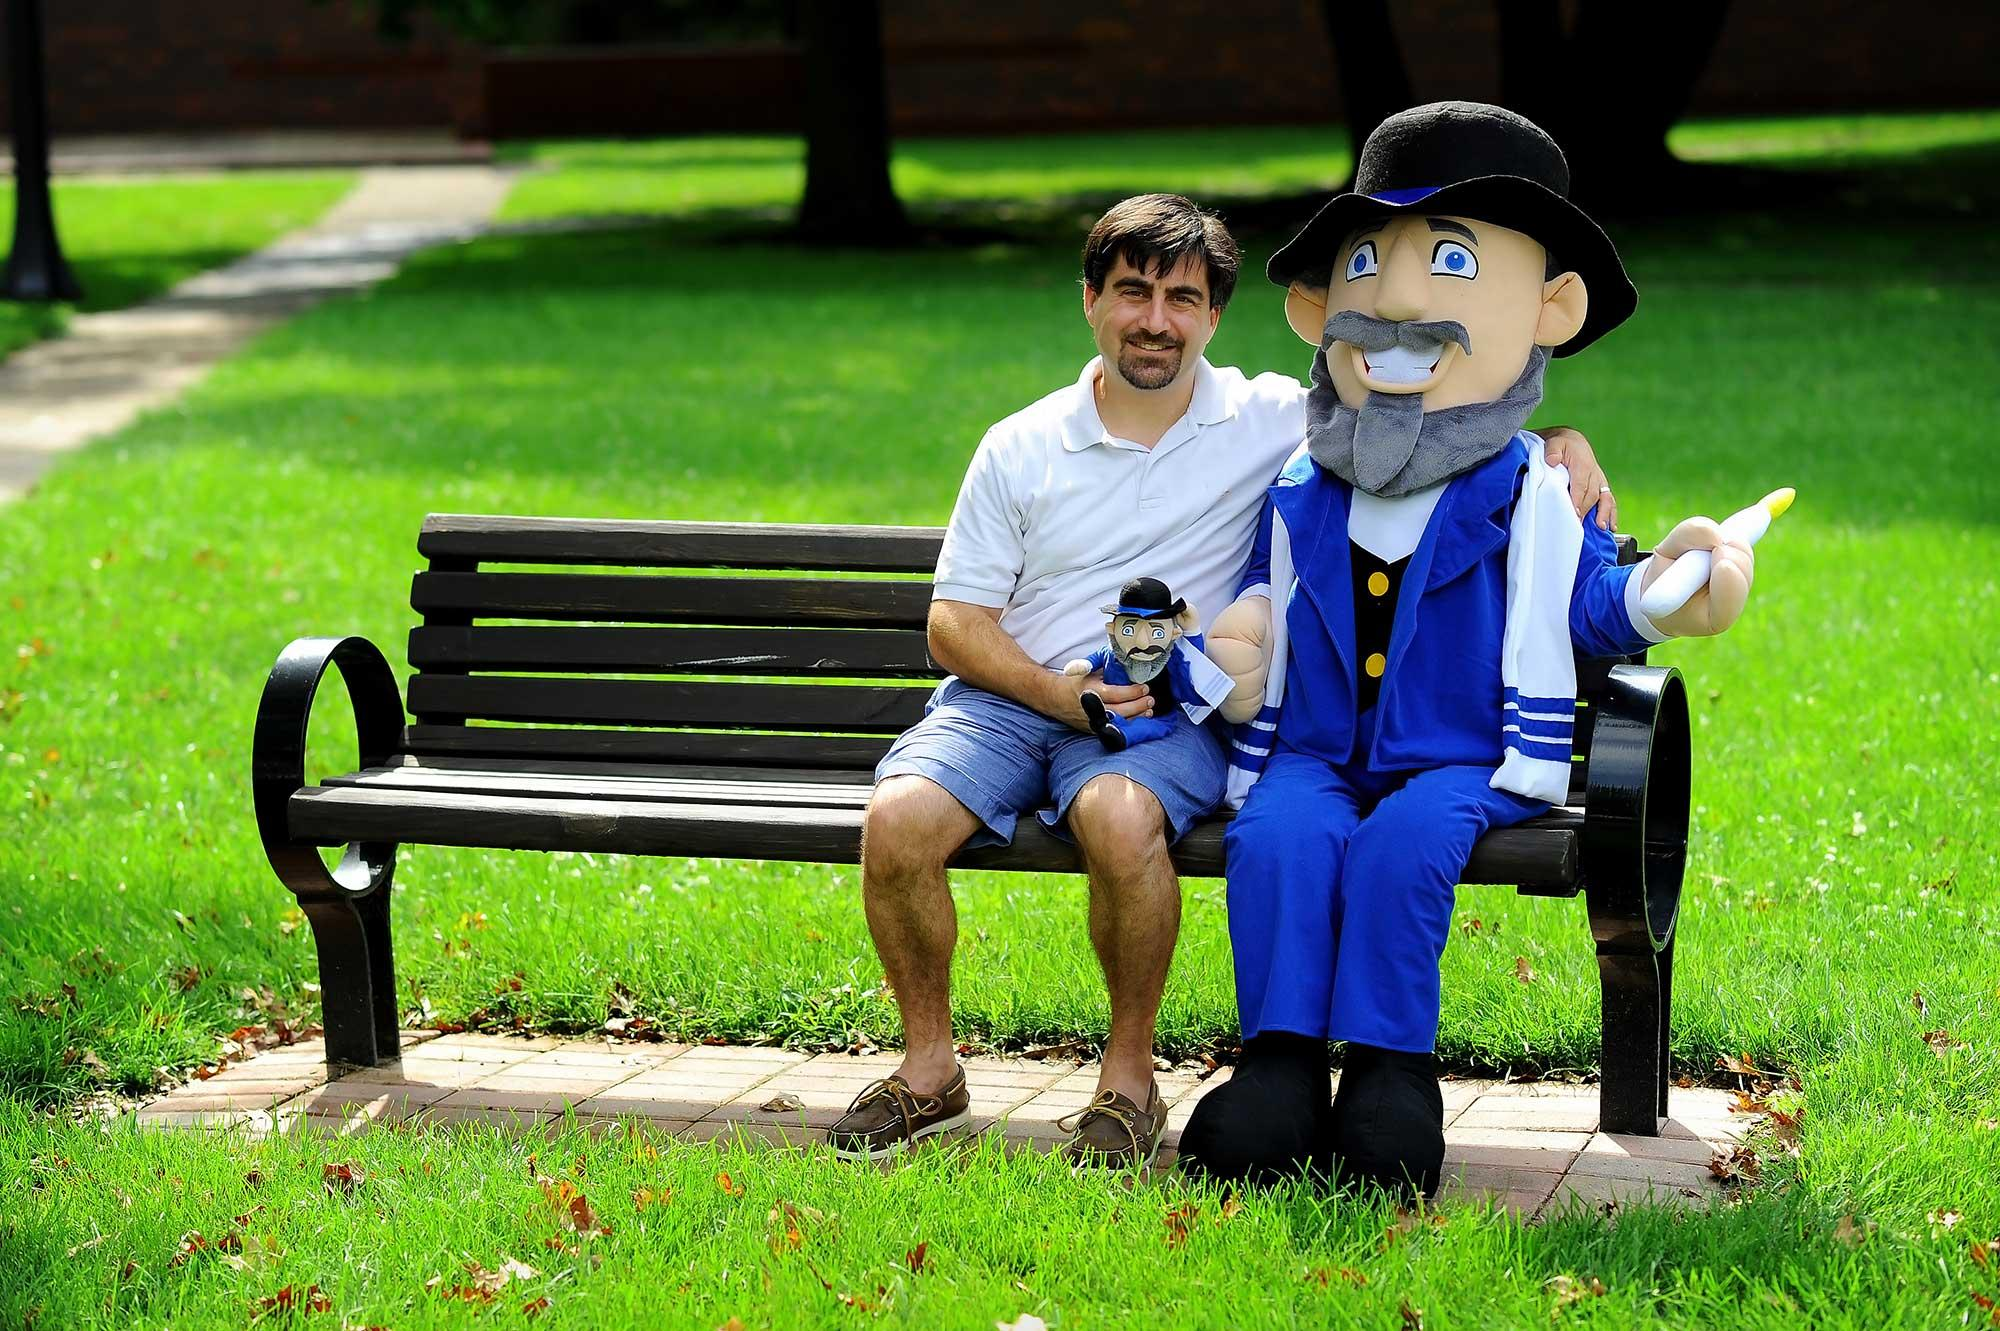 Not Interested in Elf on a Shelf Try Mensch on a Bench